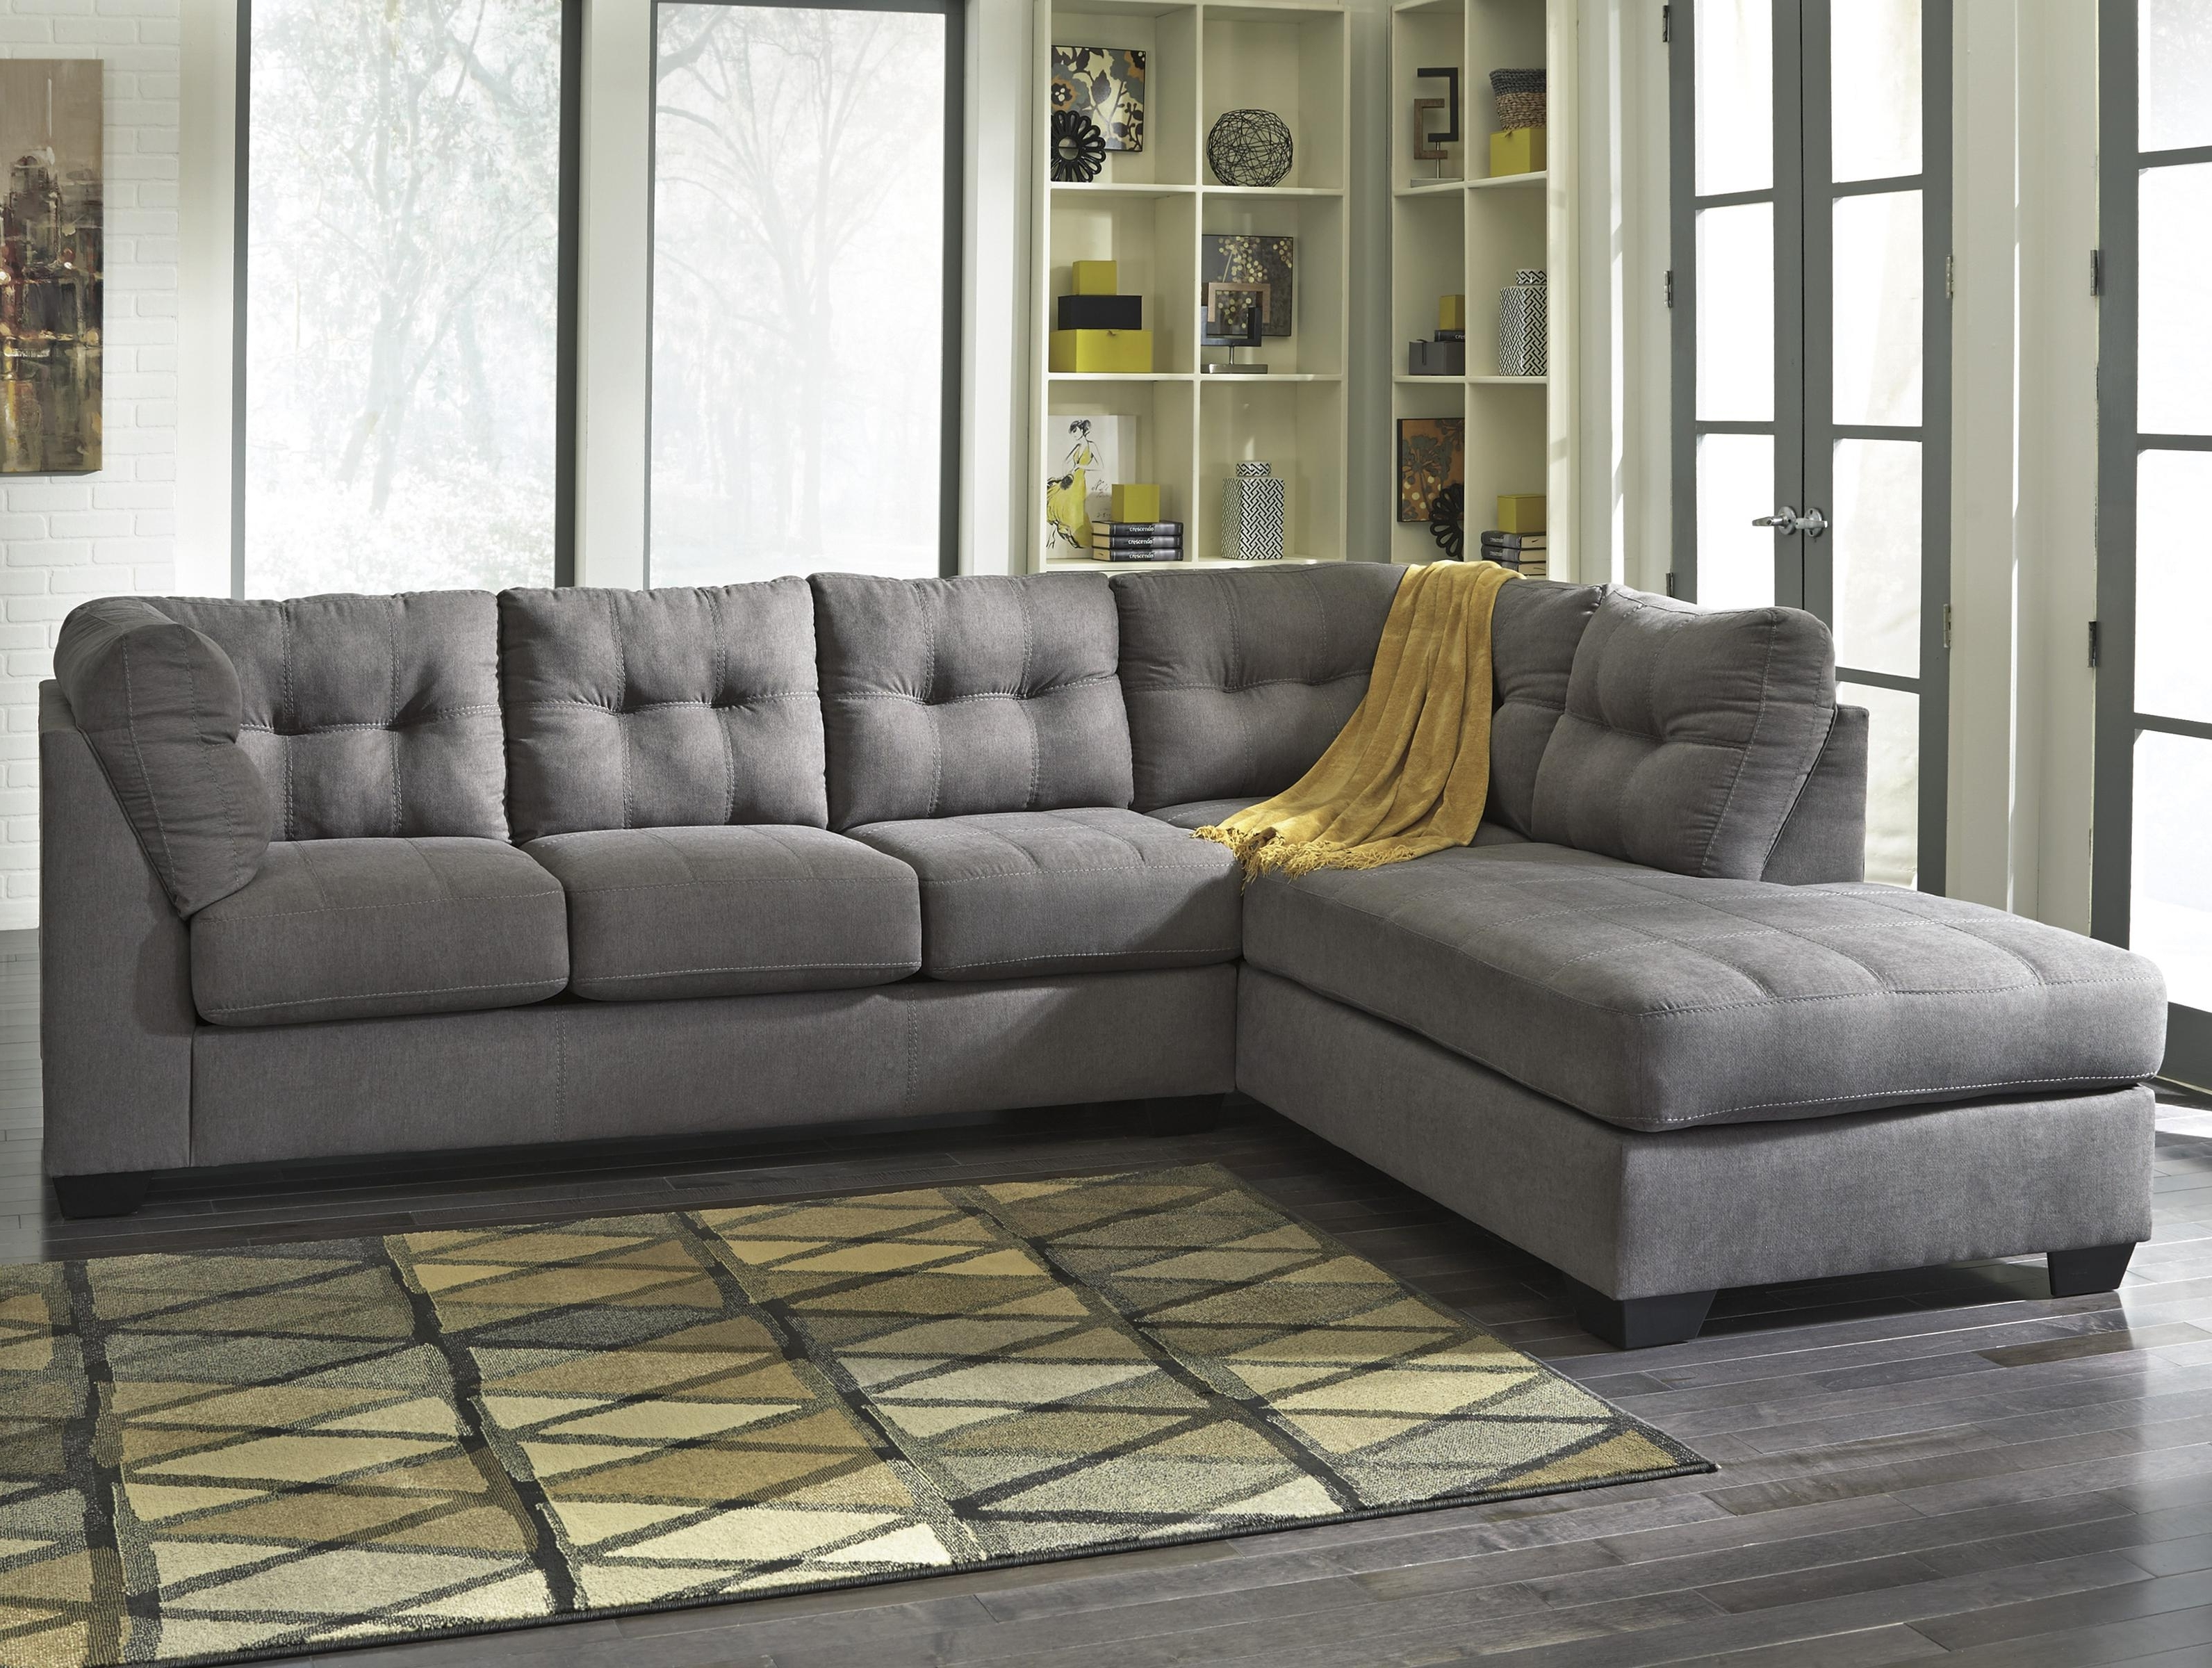 Benchcraft Maier – Charcoal 2 Piece Sectional W/ Sleeper Sofa Regarding 2017 2 Piece Sectional Sofas With Chaise (View 3 of 15)